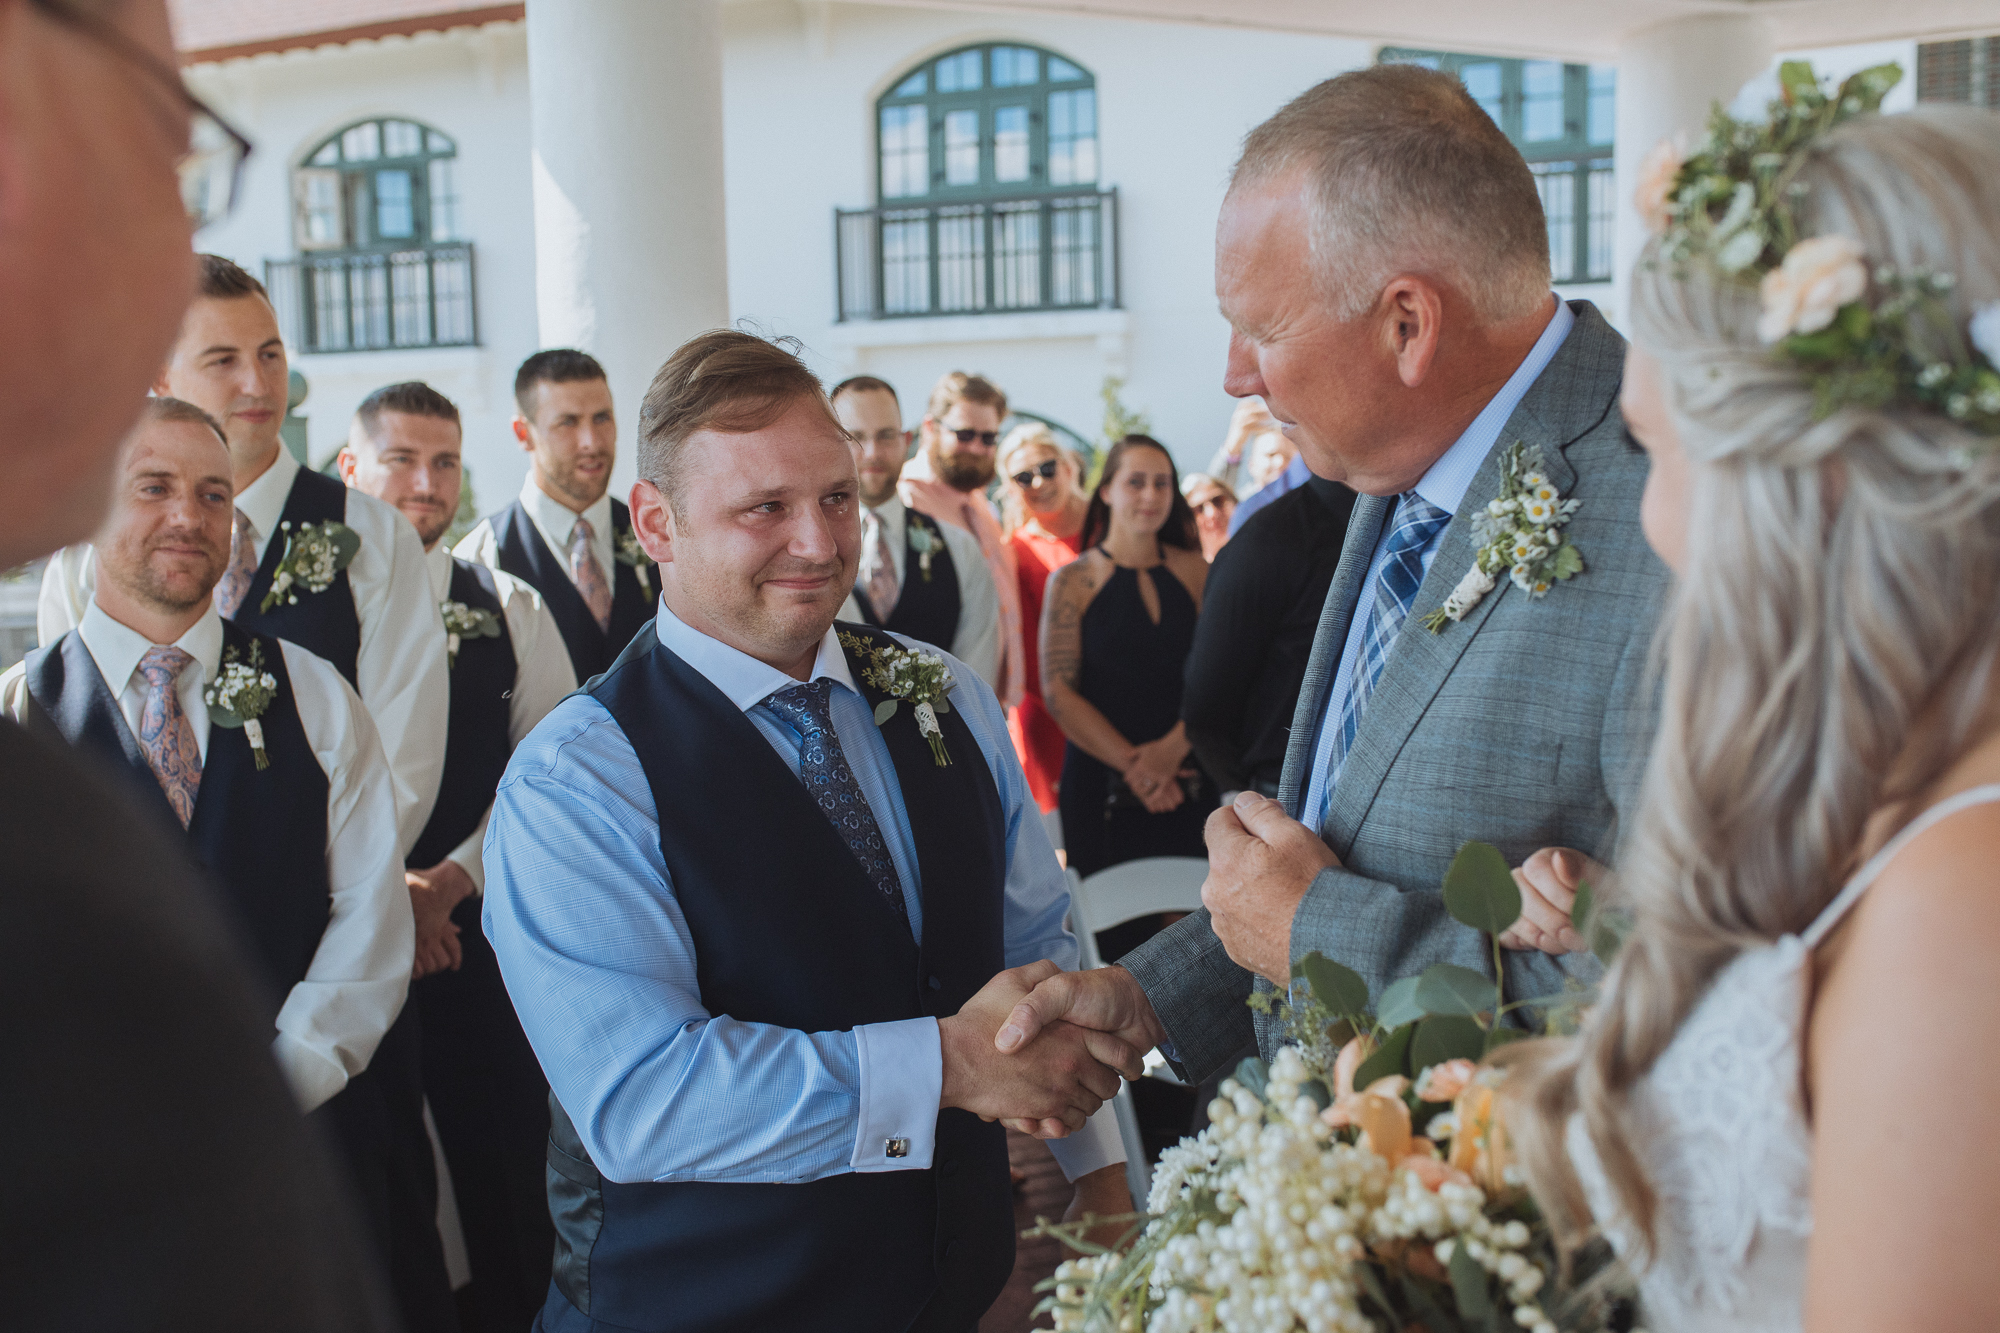 The handshake - Algonquin Garden Rooftop Wedding